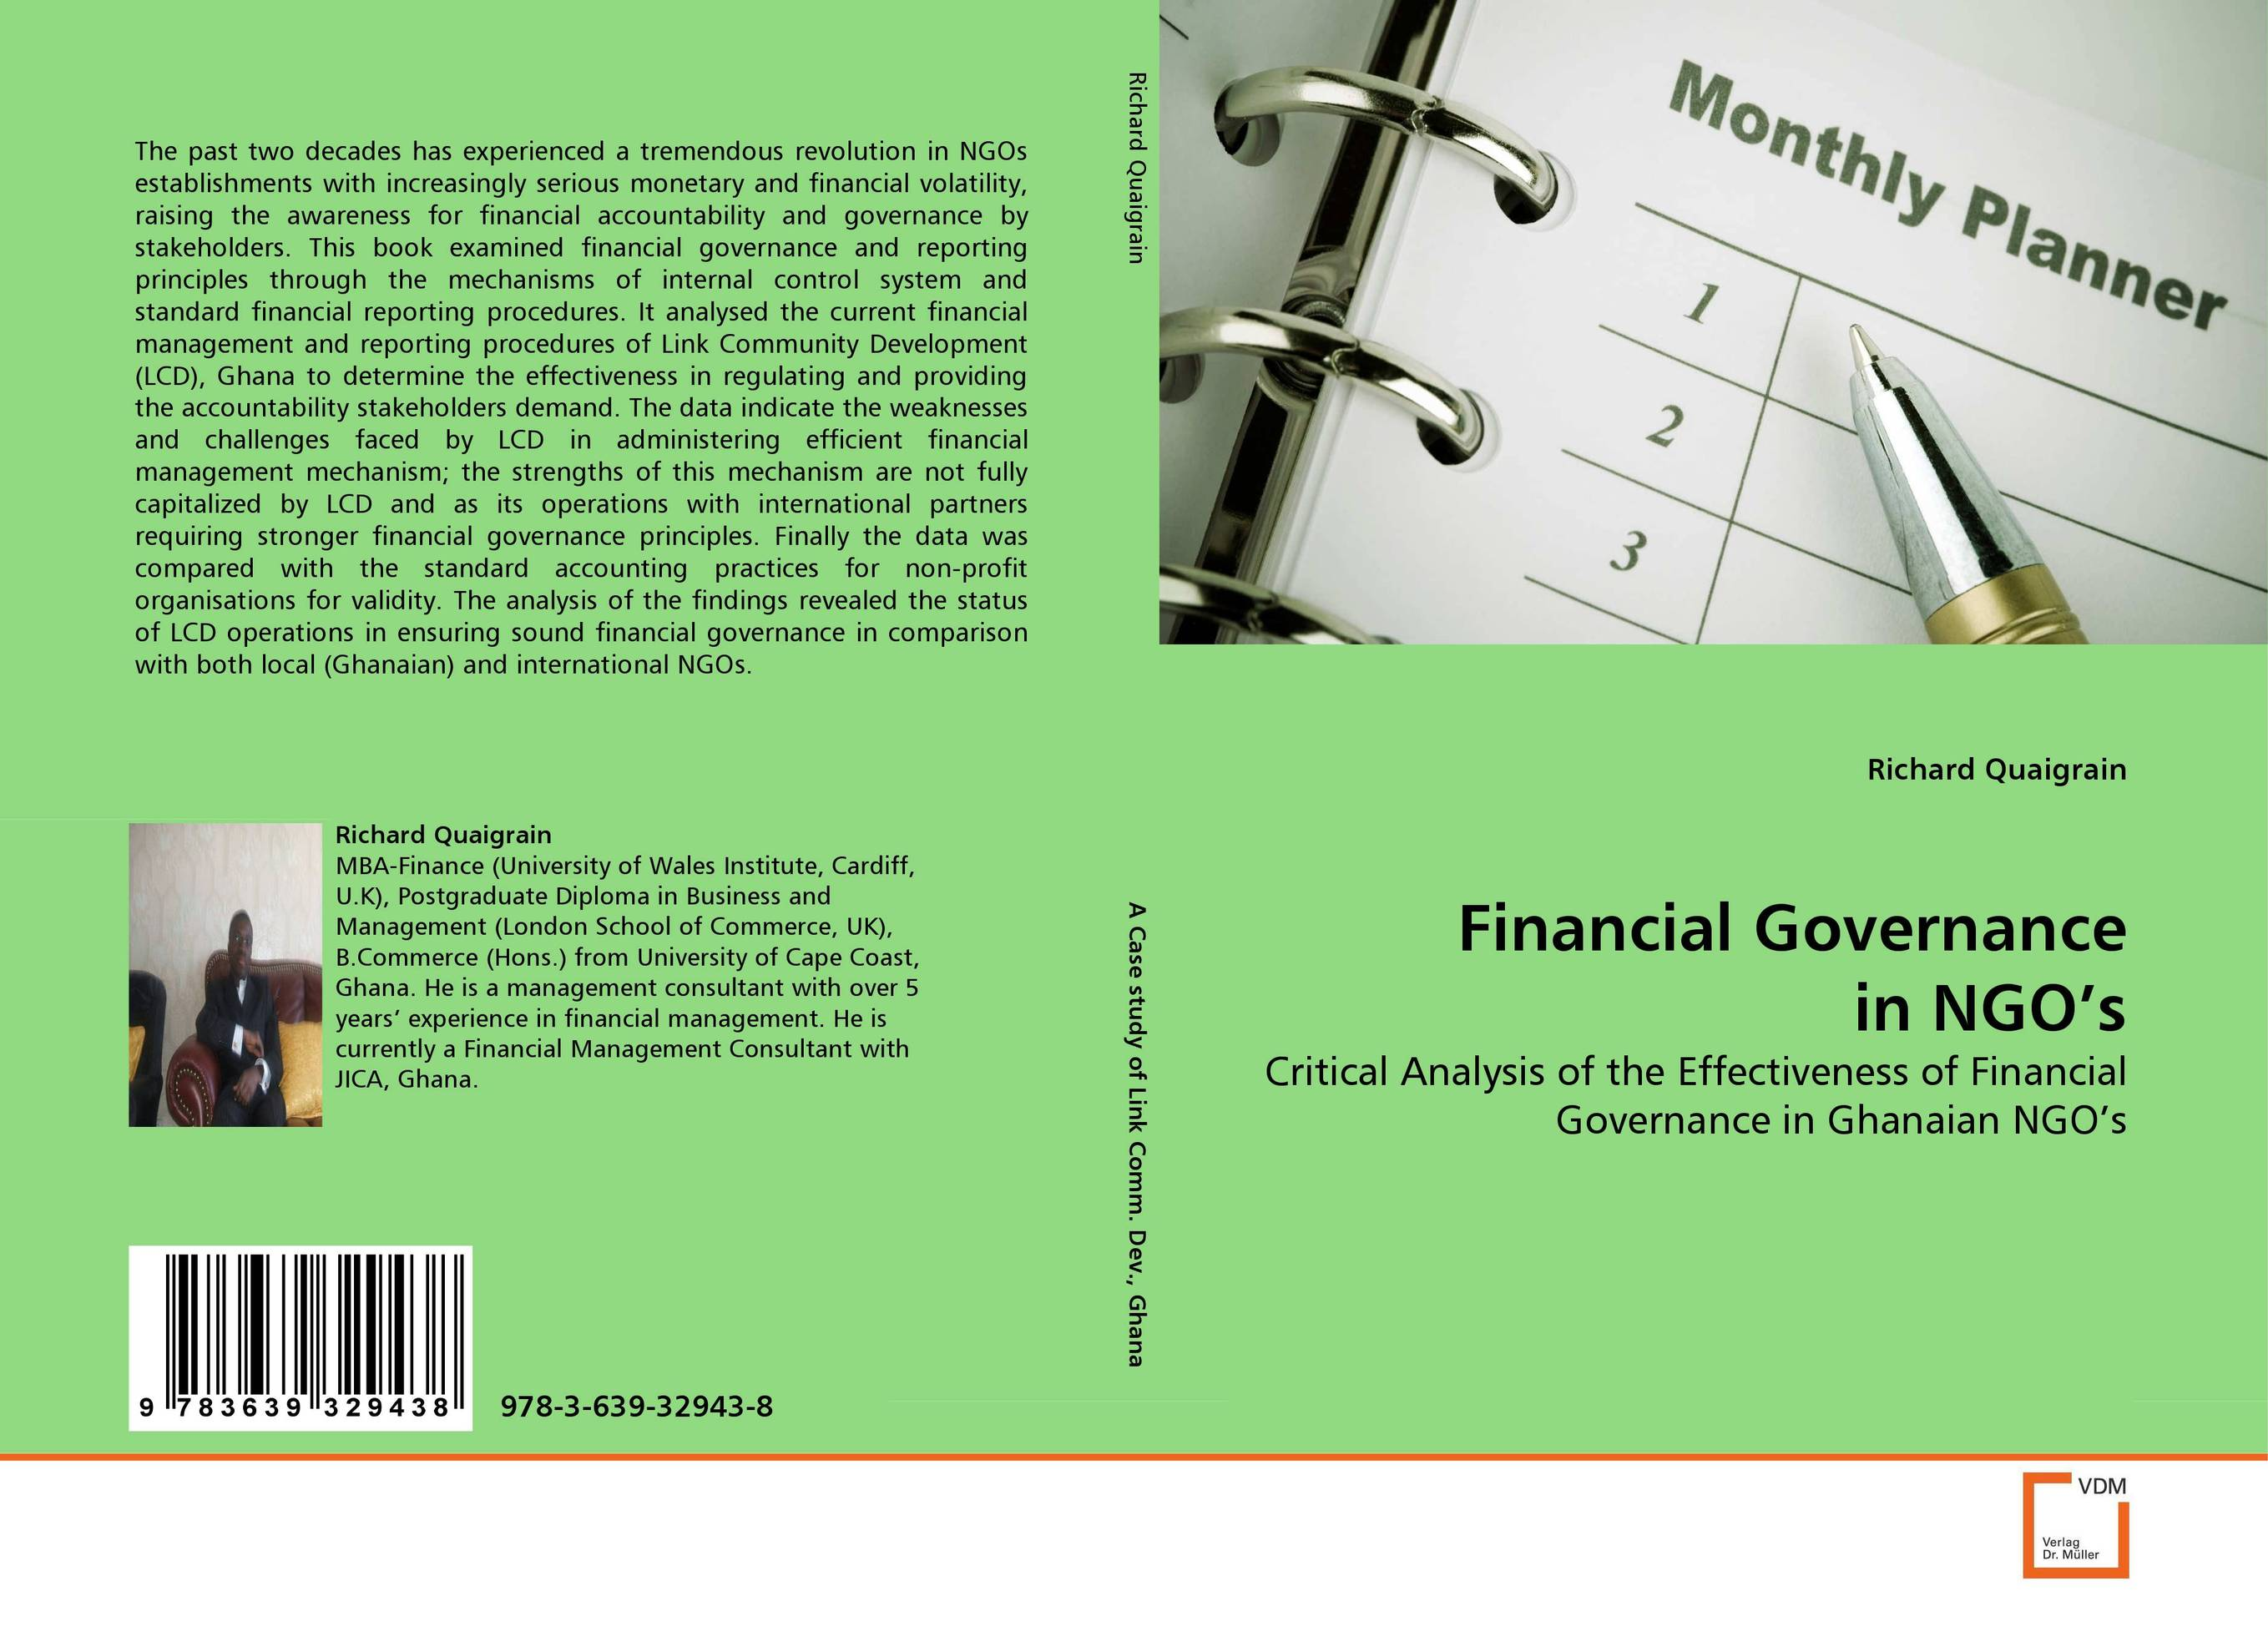 Financial Governance in NGO's